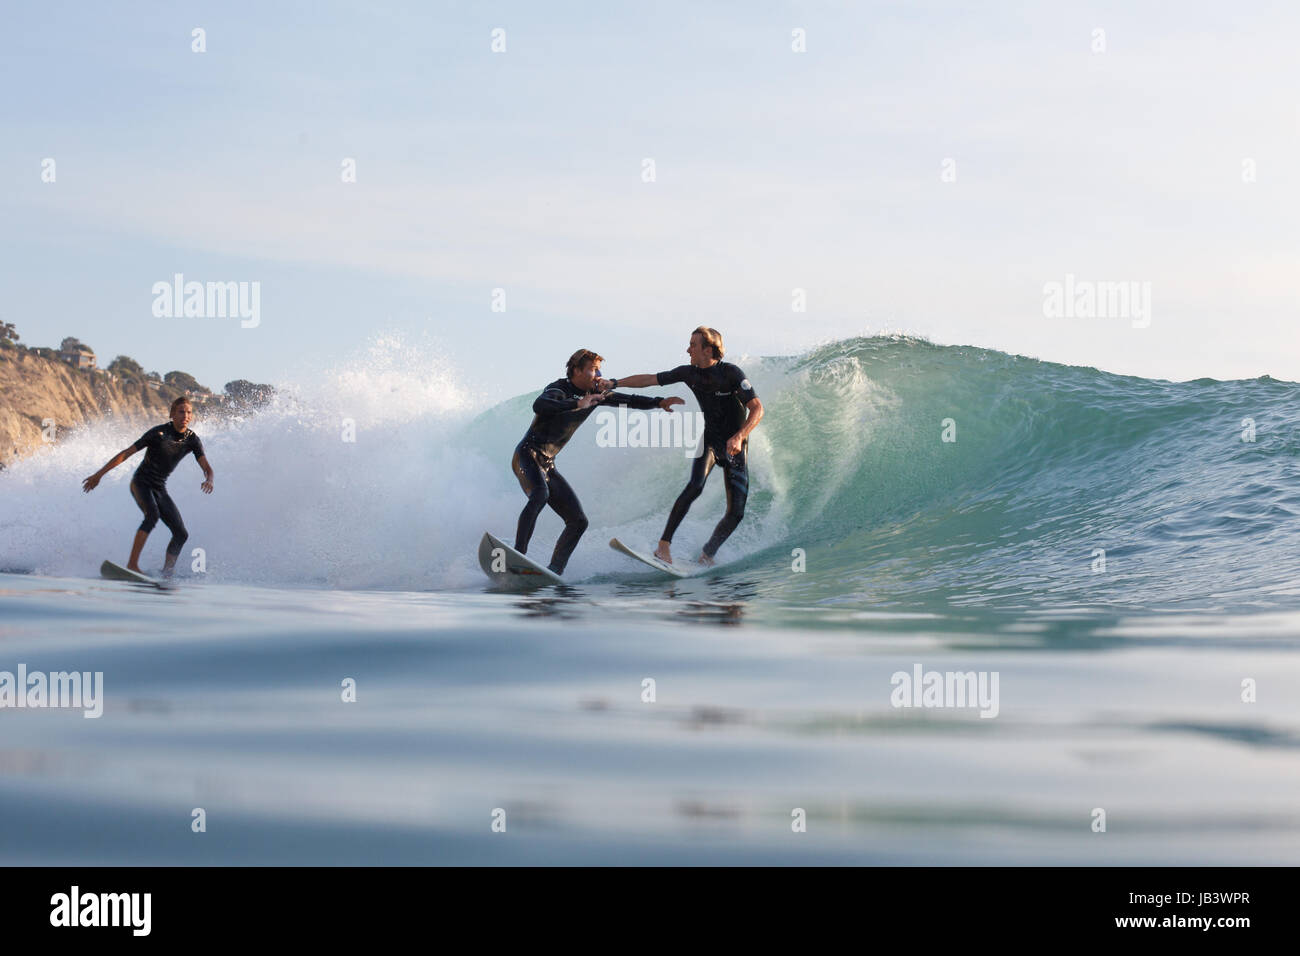 Overcrowded waves in Southern California lead two surfers to engage in a fistfight while surfing at Black's Beach. Stock Photo